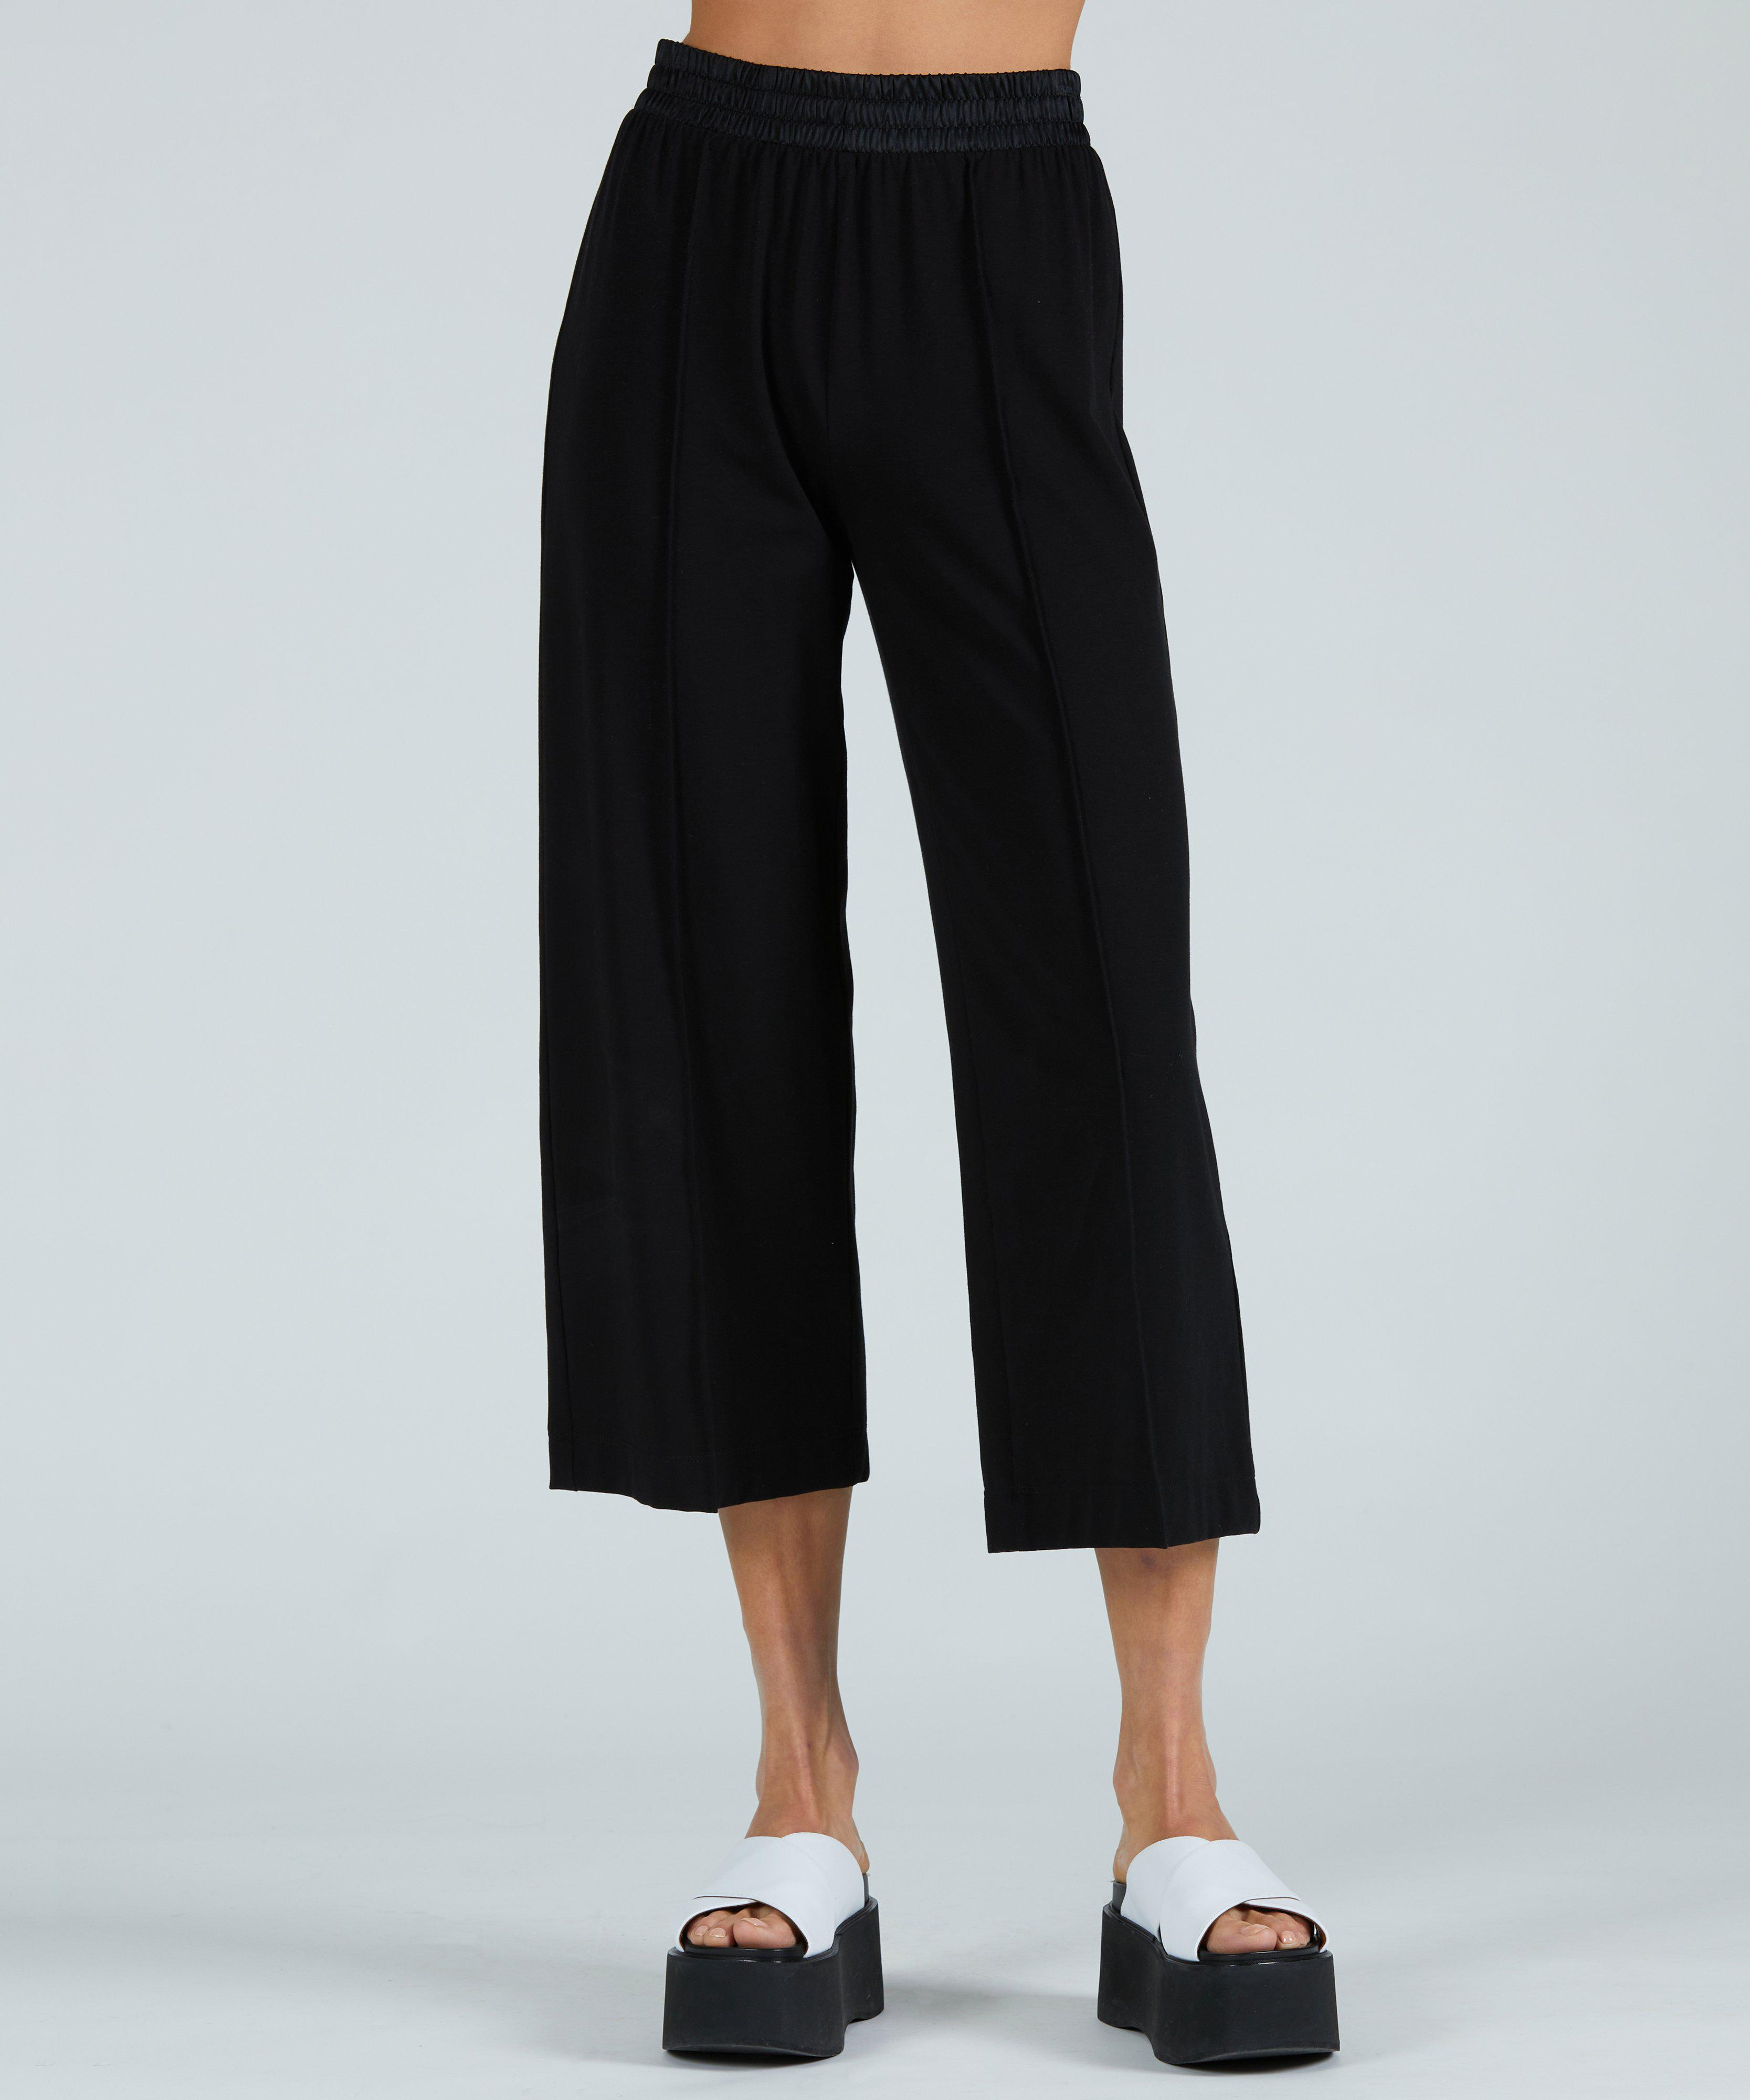 Pima Cotton Cropped Pull-On Pant - Black